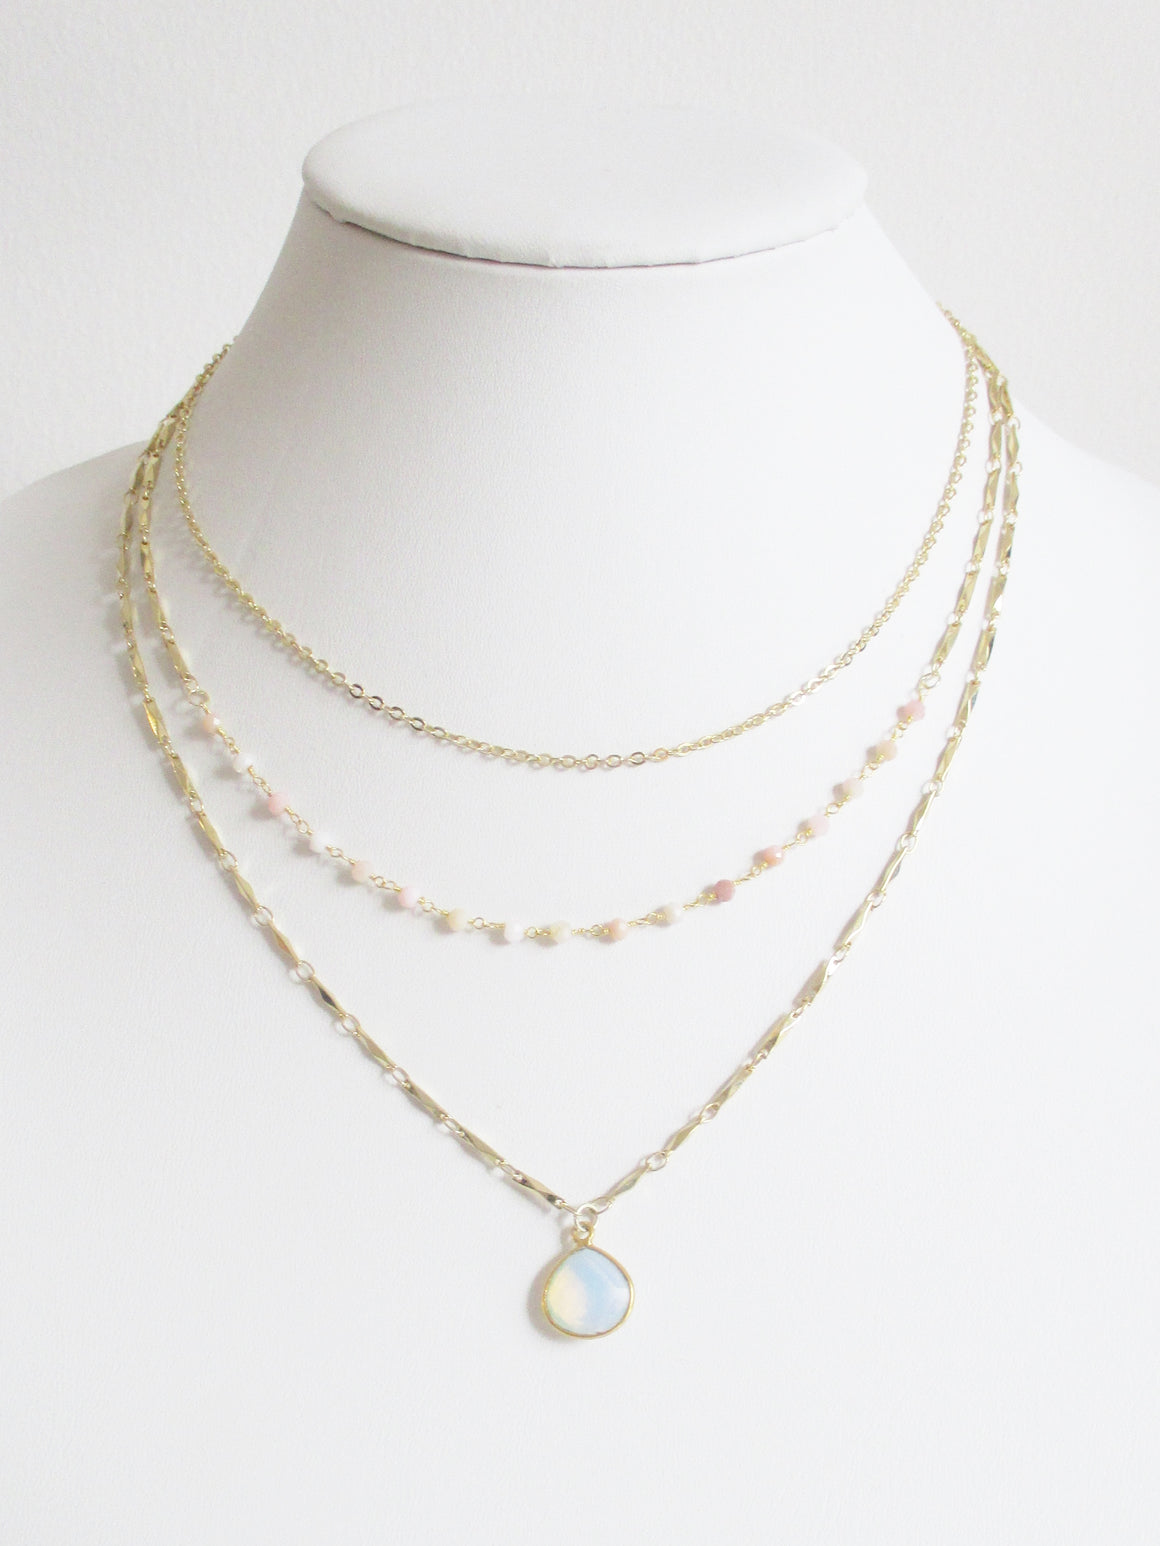 METALLIC OCEAN THREE TIER PINK OPAL AND WHITE OPAL GEMSTONE NECKLACE